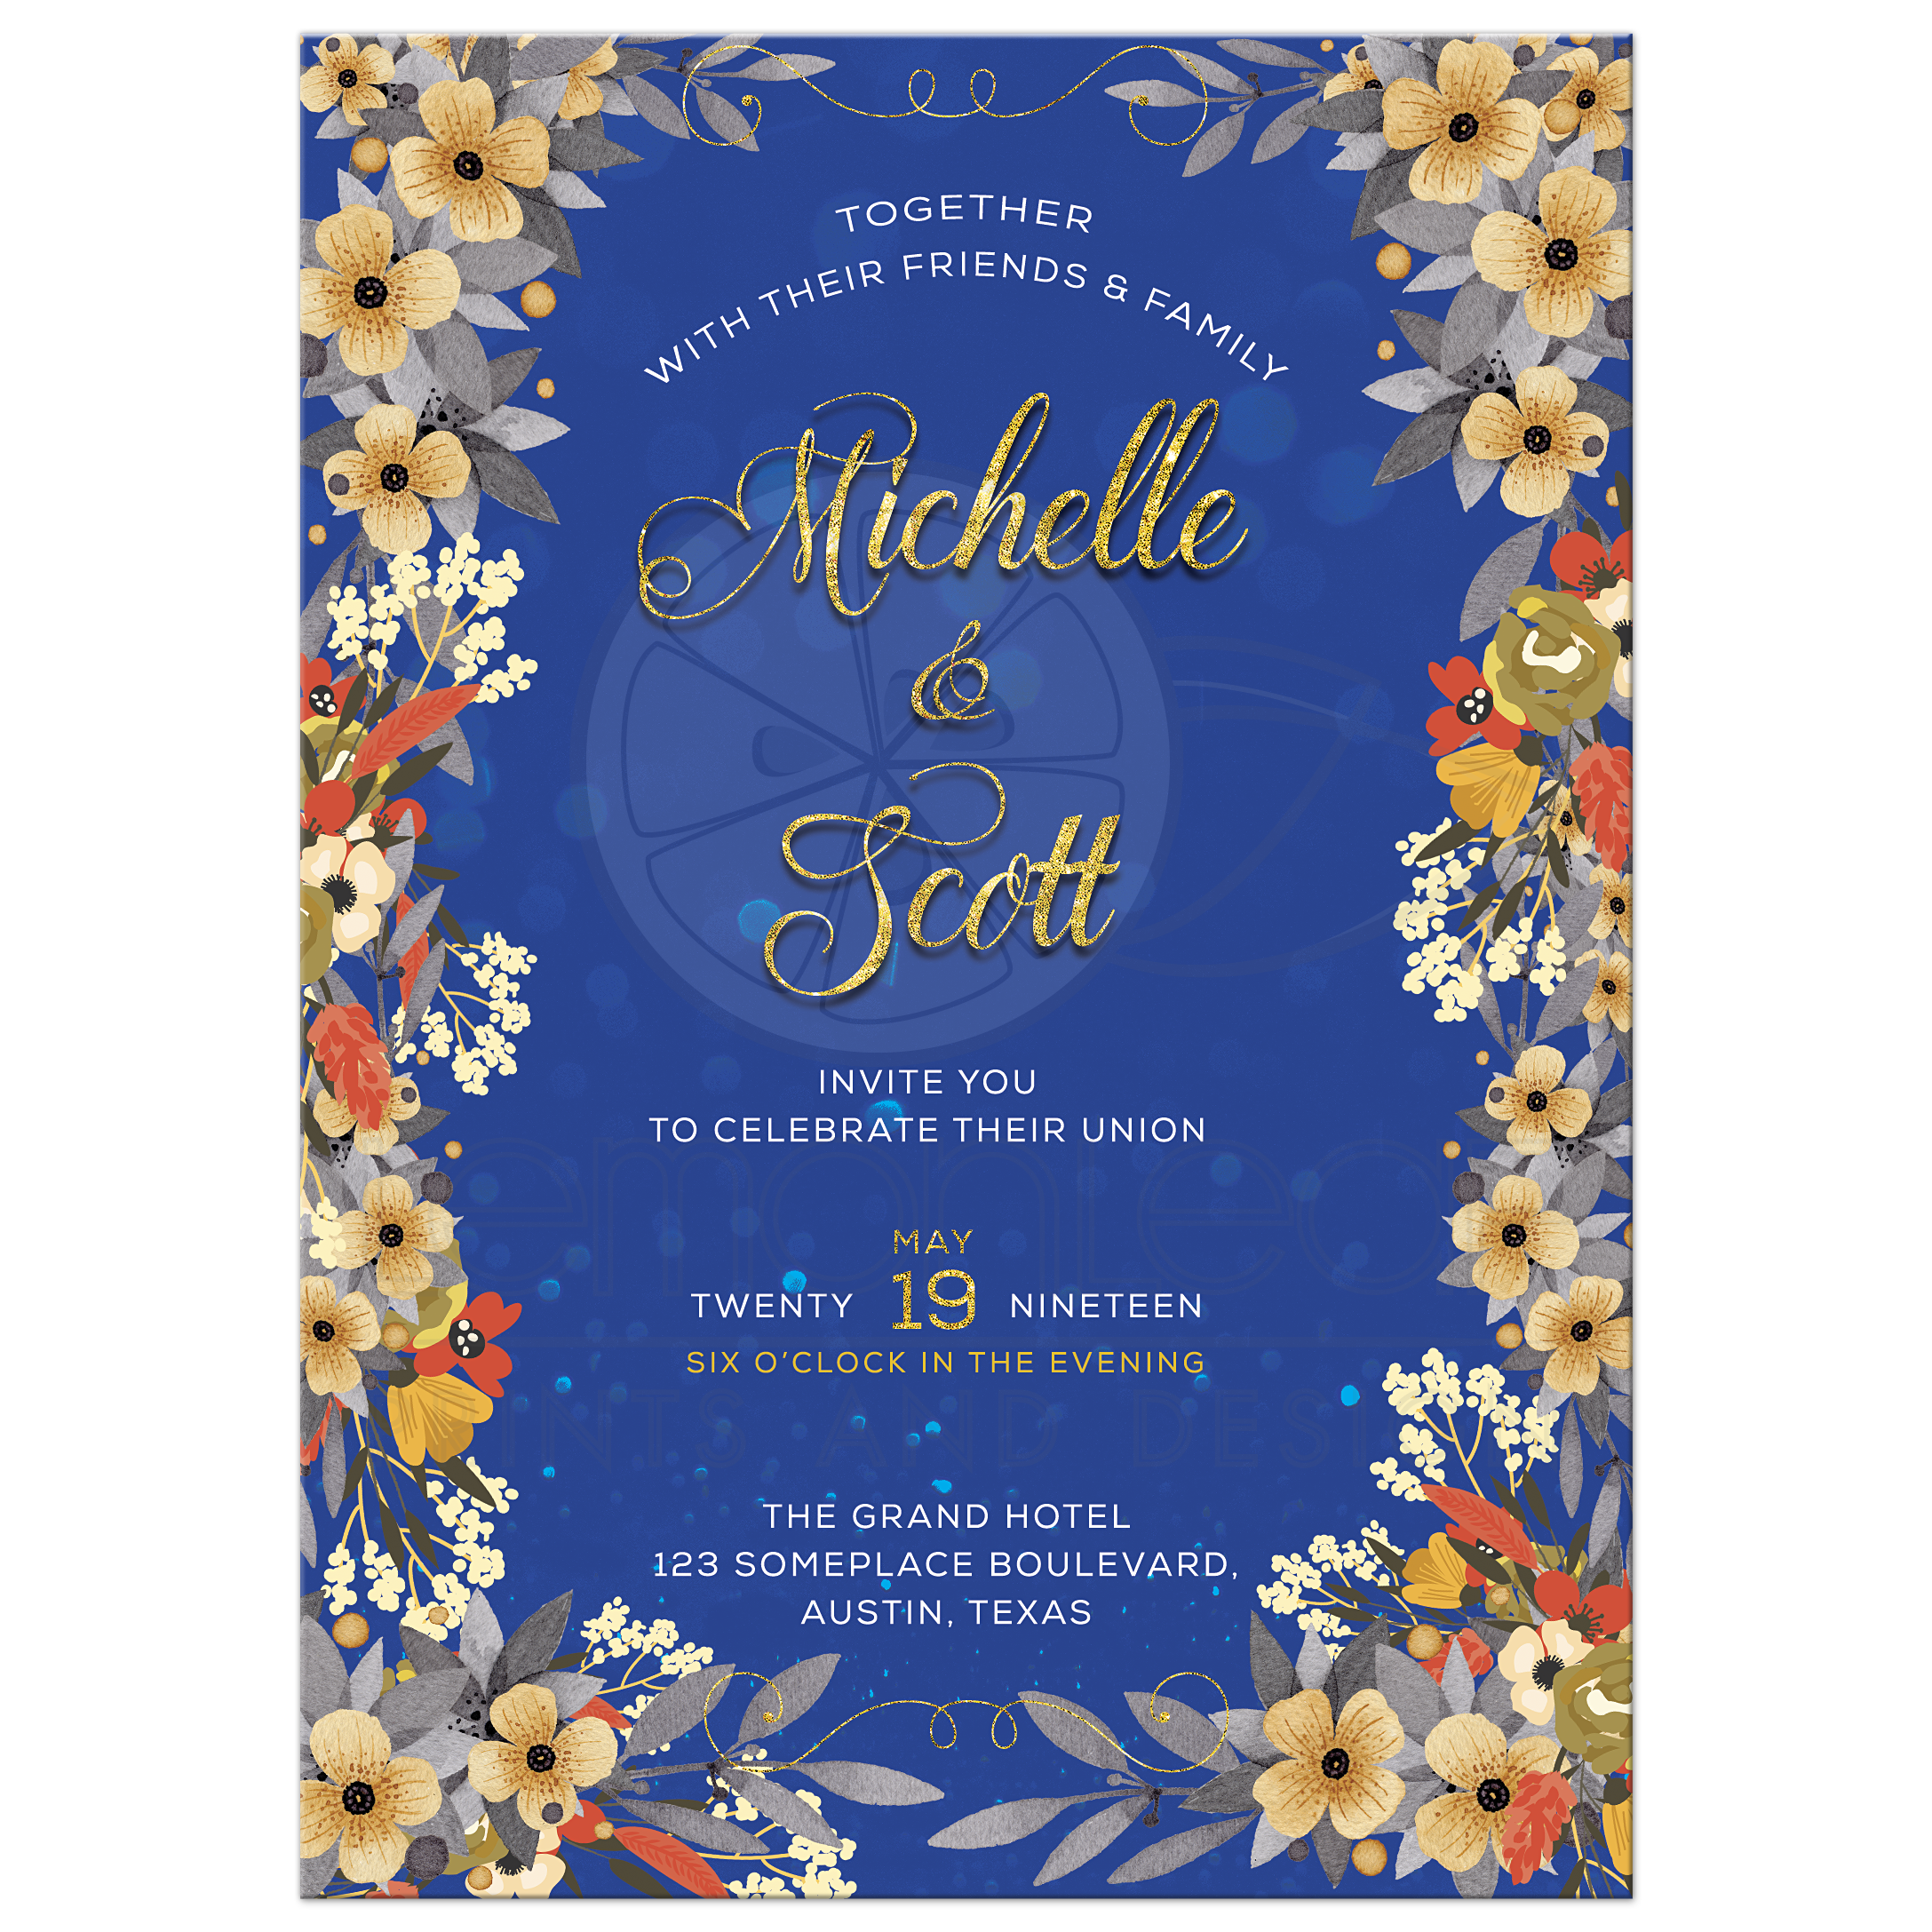 Bright Blue A7 Envelopes for 5 x 7 Invitations Announcements Weddings Shower